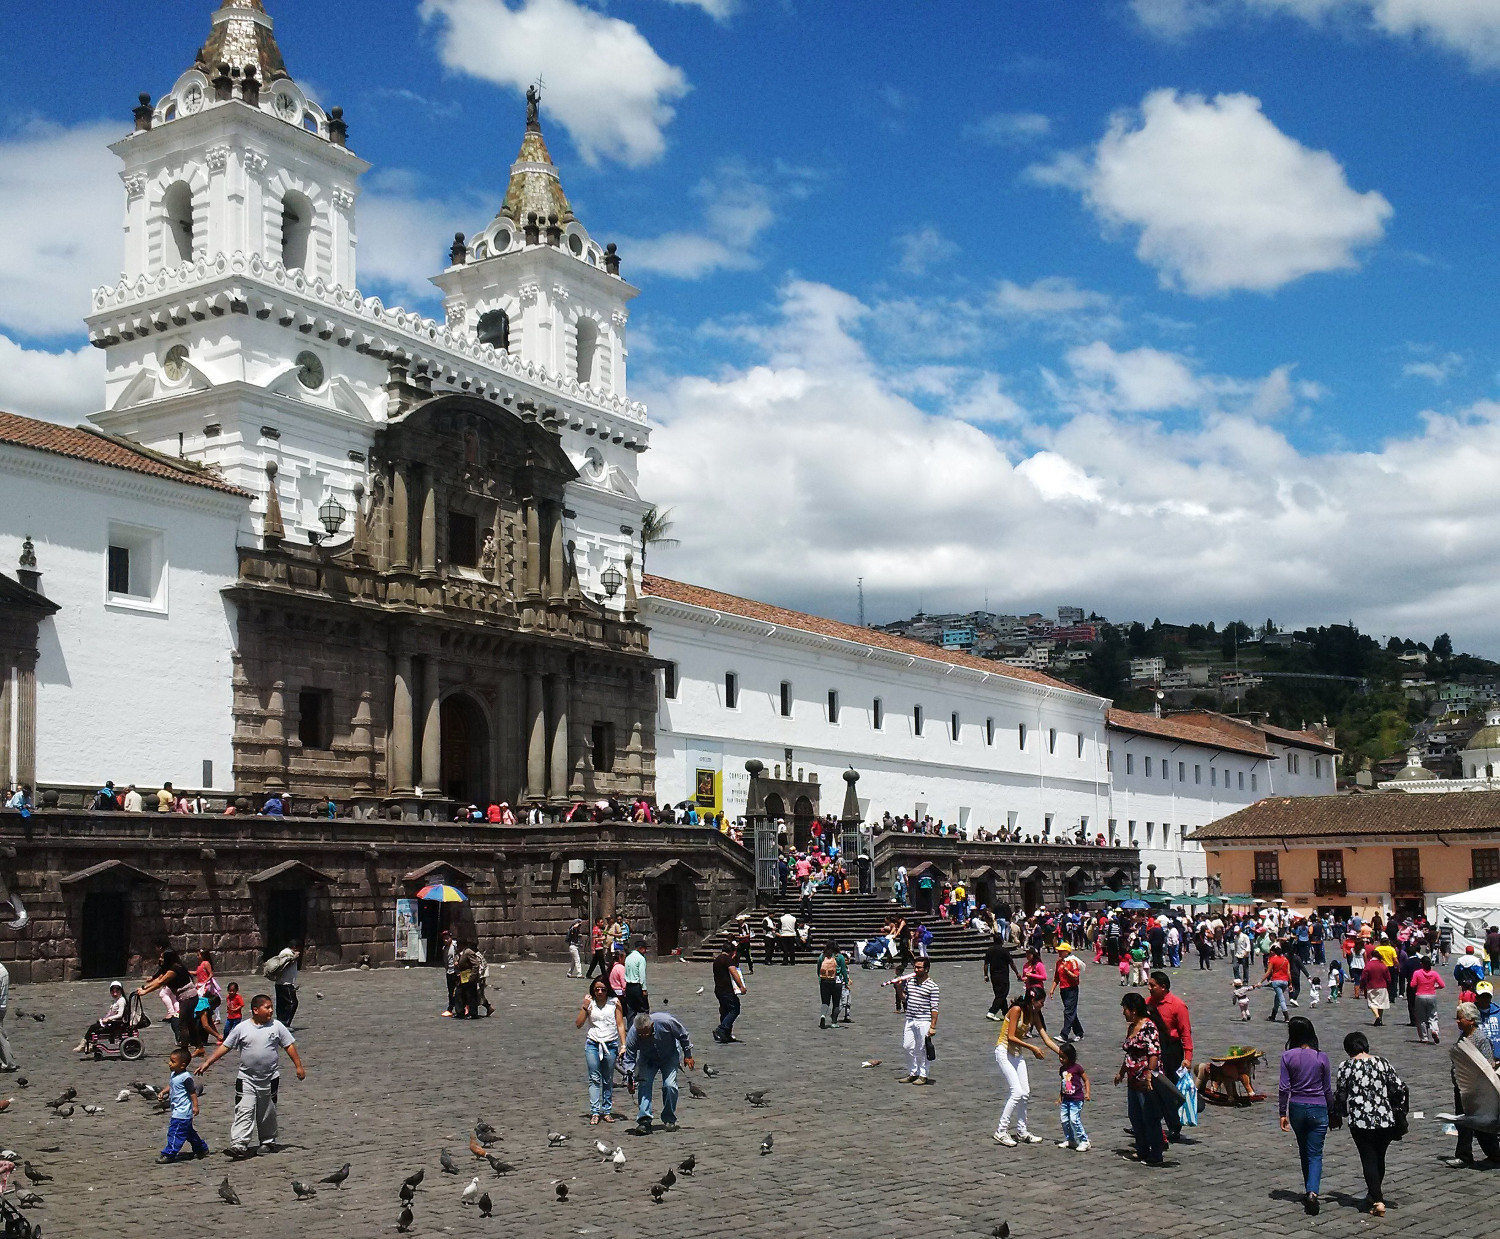 Die Kirche San Francisco: Quito ist voll mit barocken Kirchen und Kunstschätzen | The church of San Francisco: Quito is full of baroque churches and art treasures